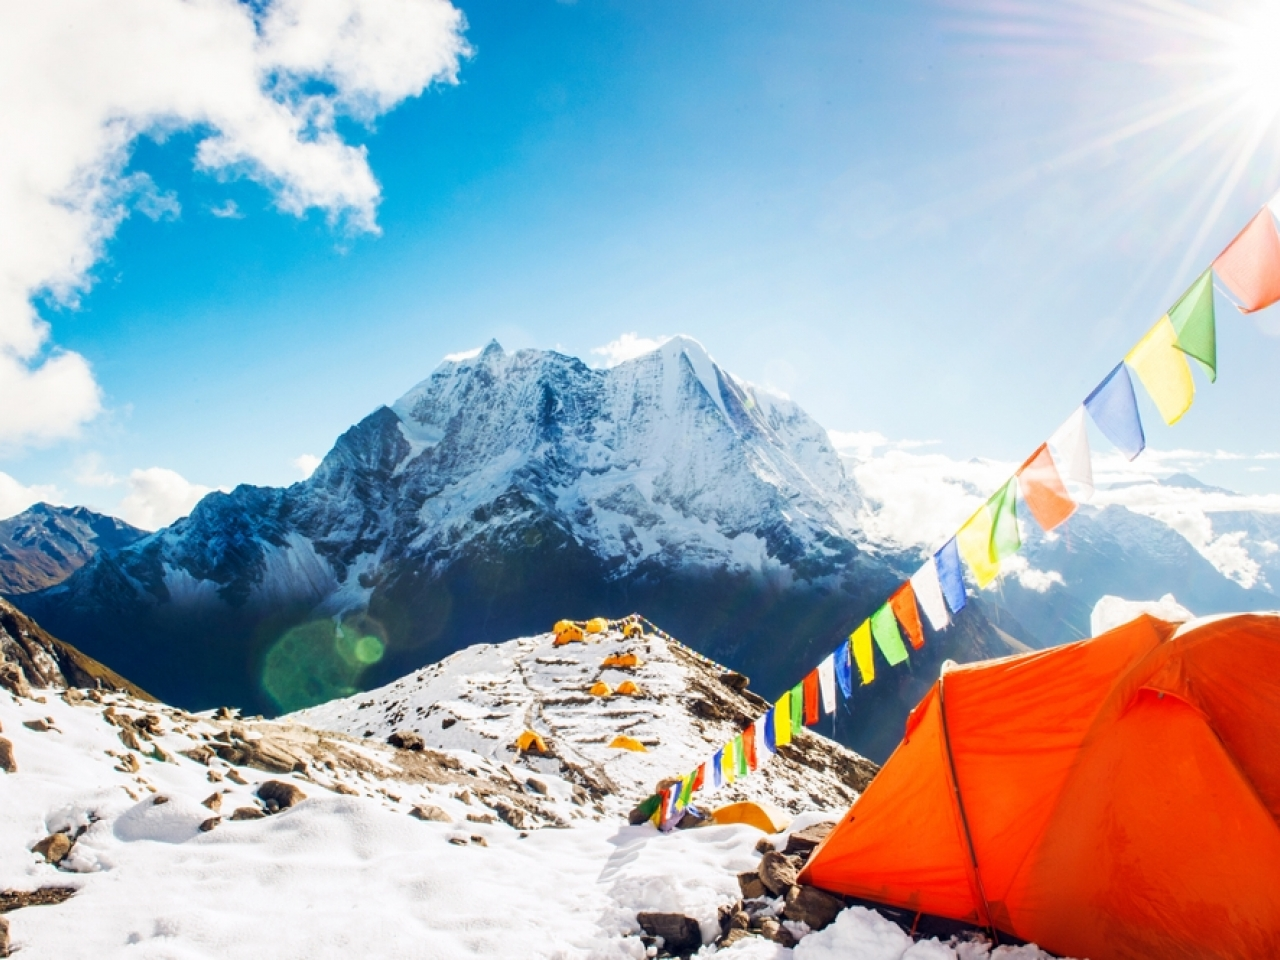 State media reports that the move comes after dozens were taken ill from the summit's base camp. Image: Shutterstock